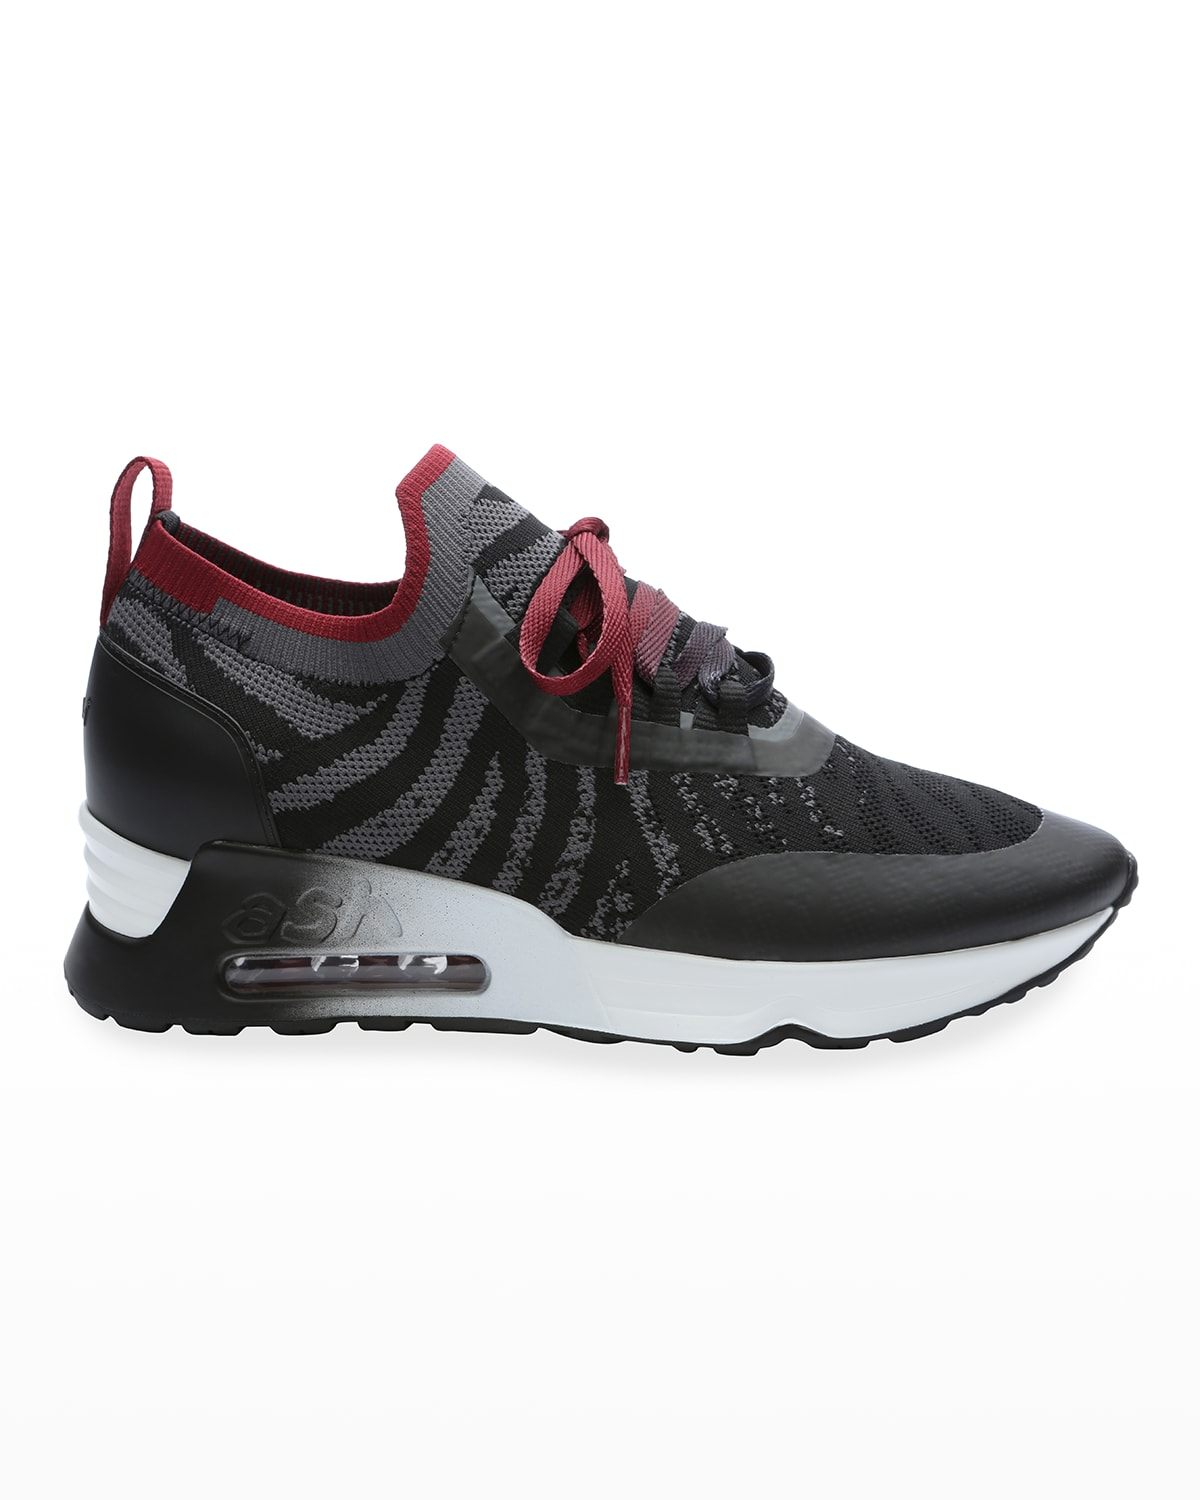 Loto Bicolor Knit Lace-Up Sneakers